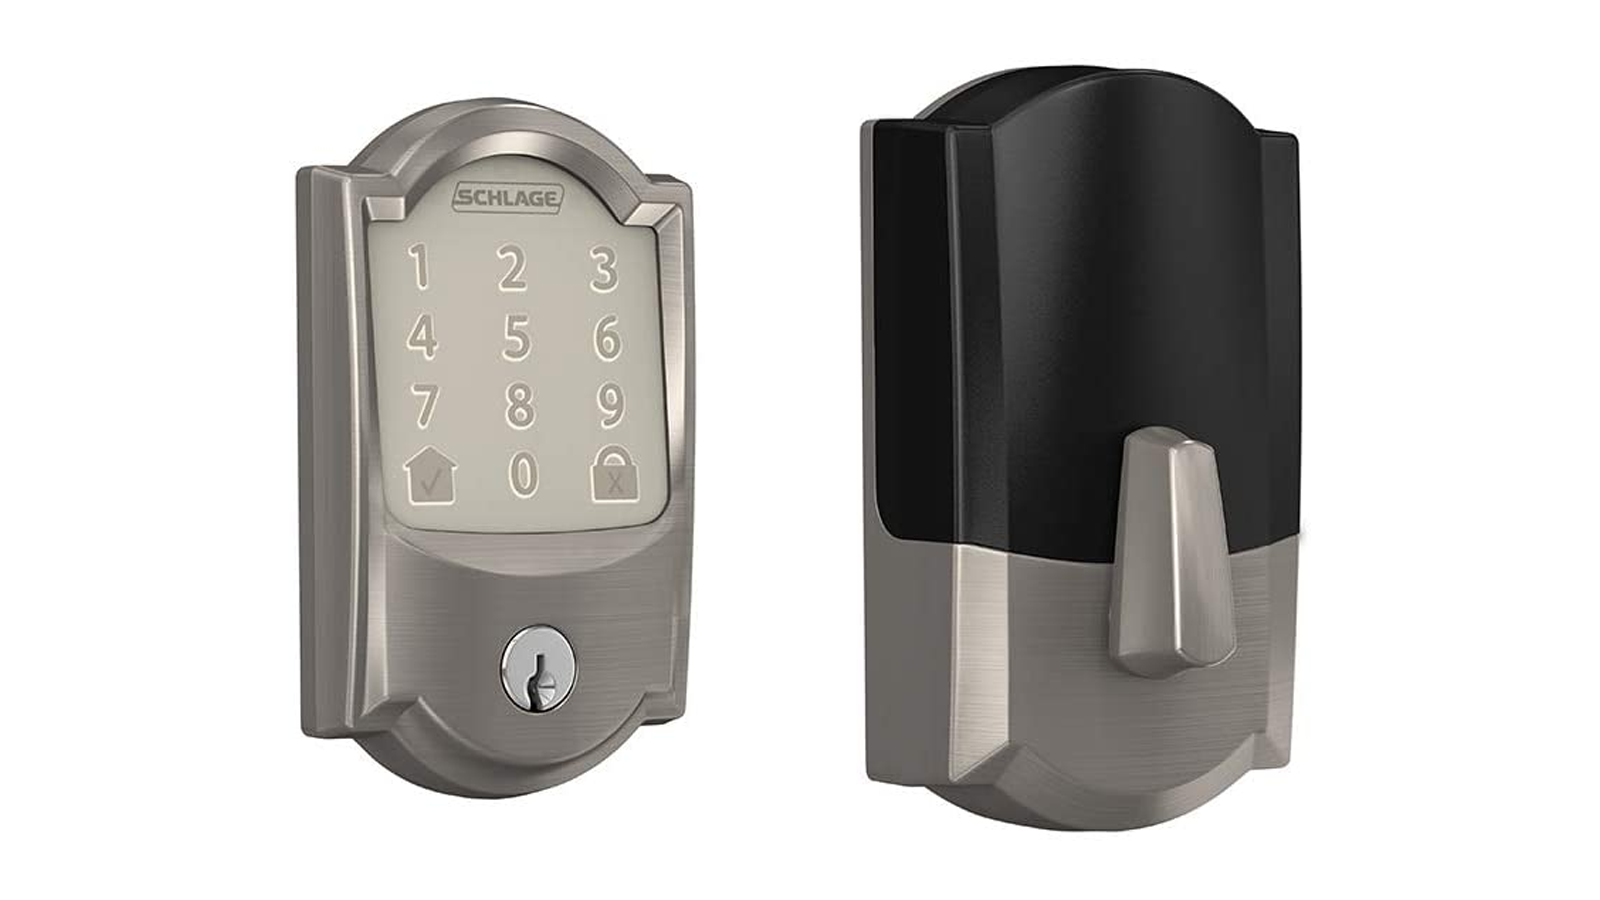 A photo of the Schlage smart lock and keypad.